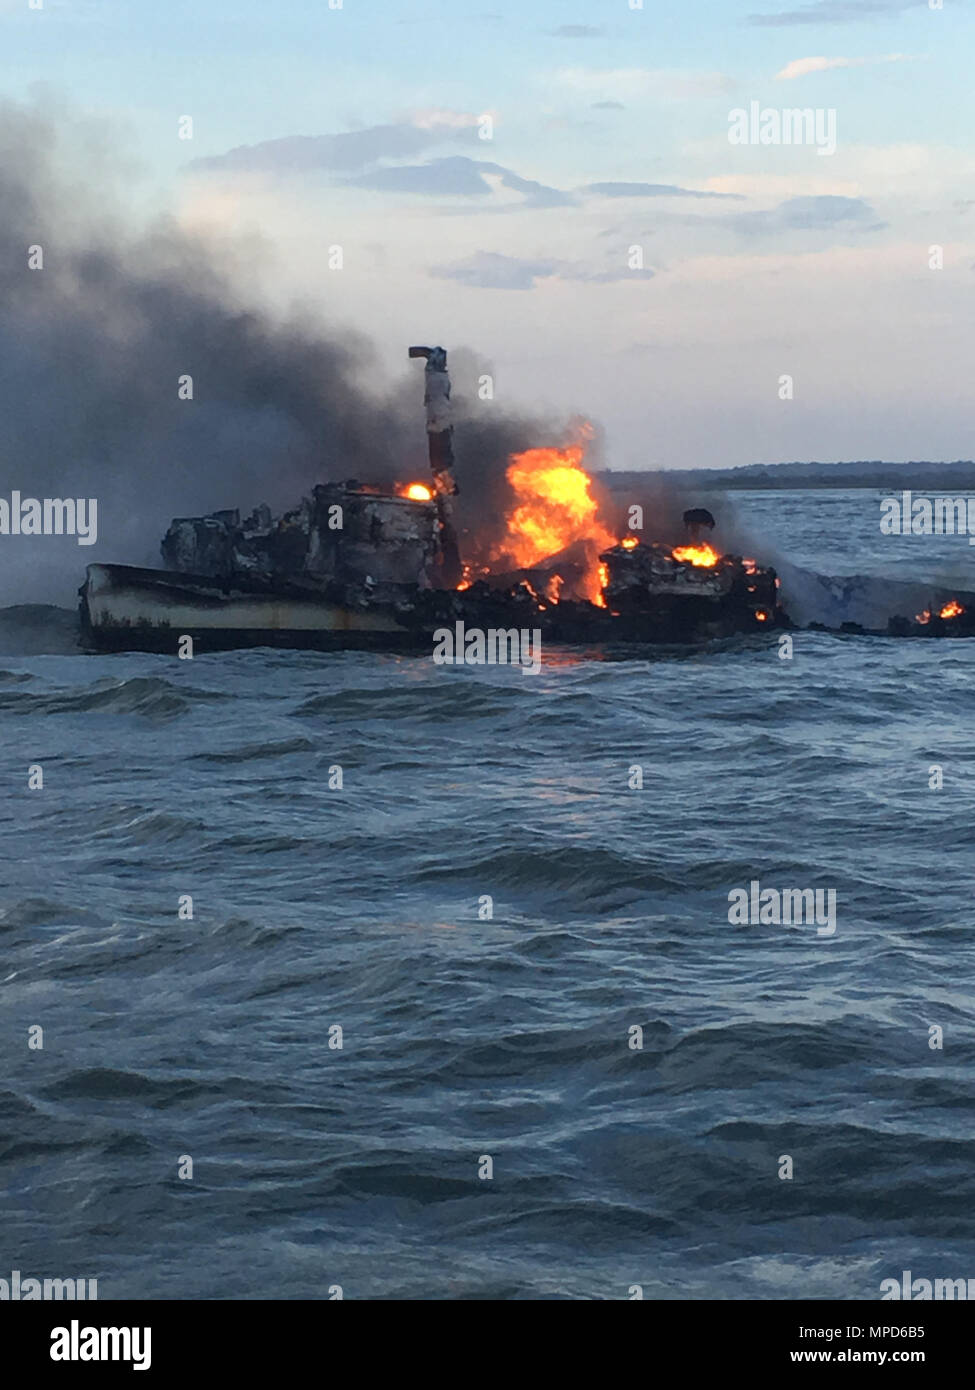 The Coast Guard Rescued Three Fishermen Tuesday After Their Vessel Caught Fire 1 Mile East Of St Catherines Island Coast Guard Sector Charleston Command Center Watchstanders Received A Call From The Fishing